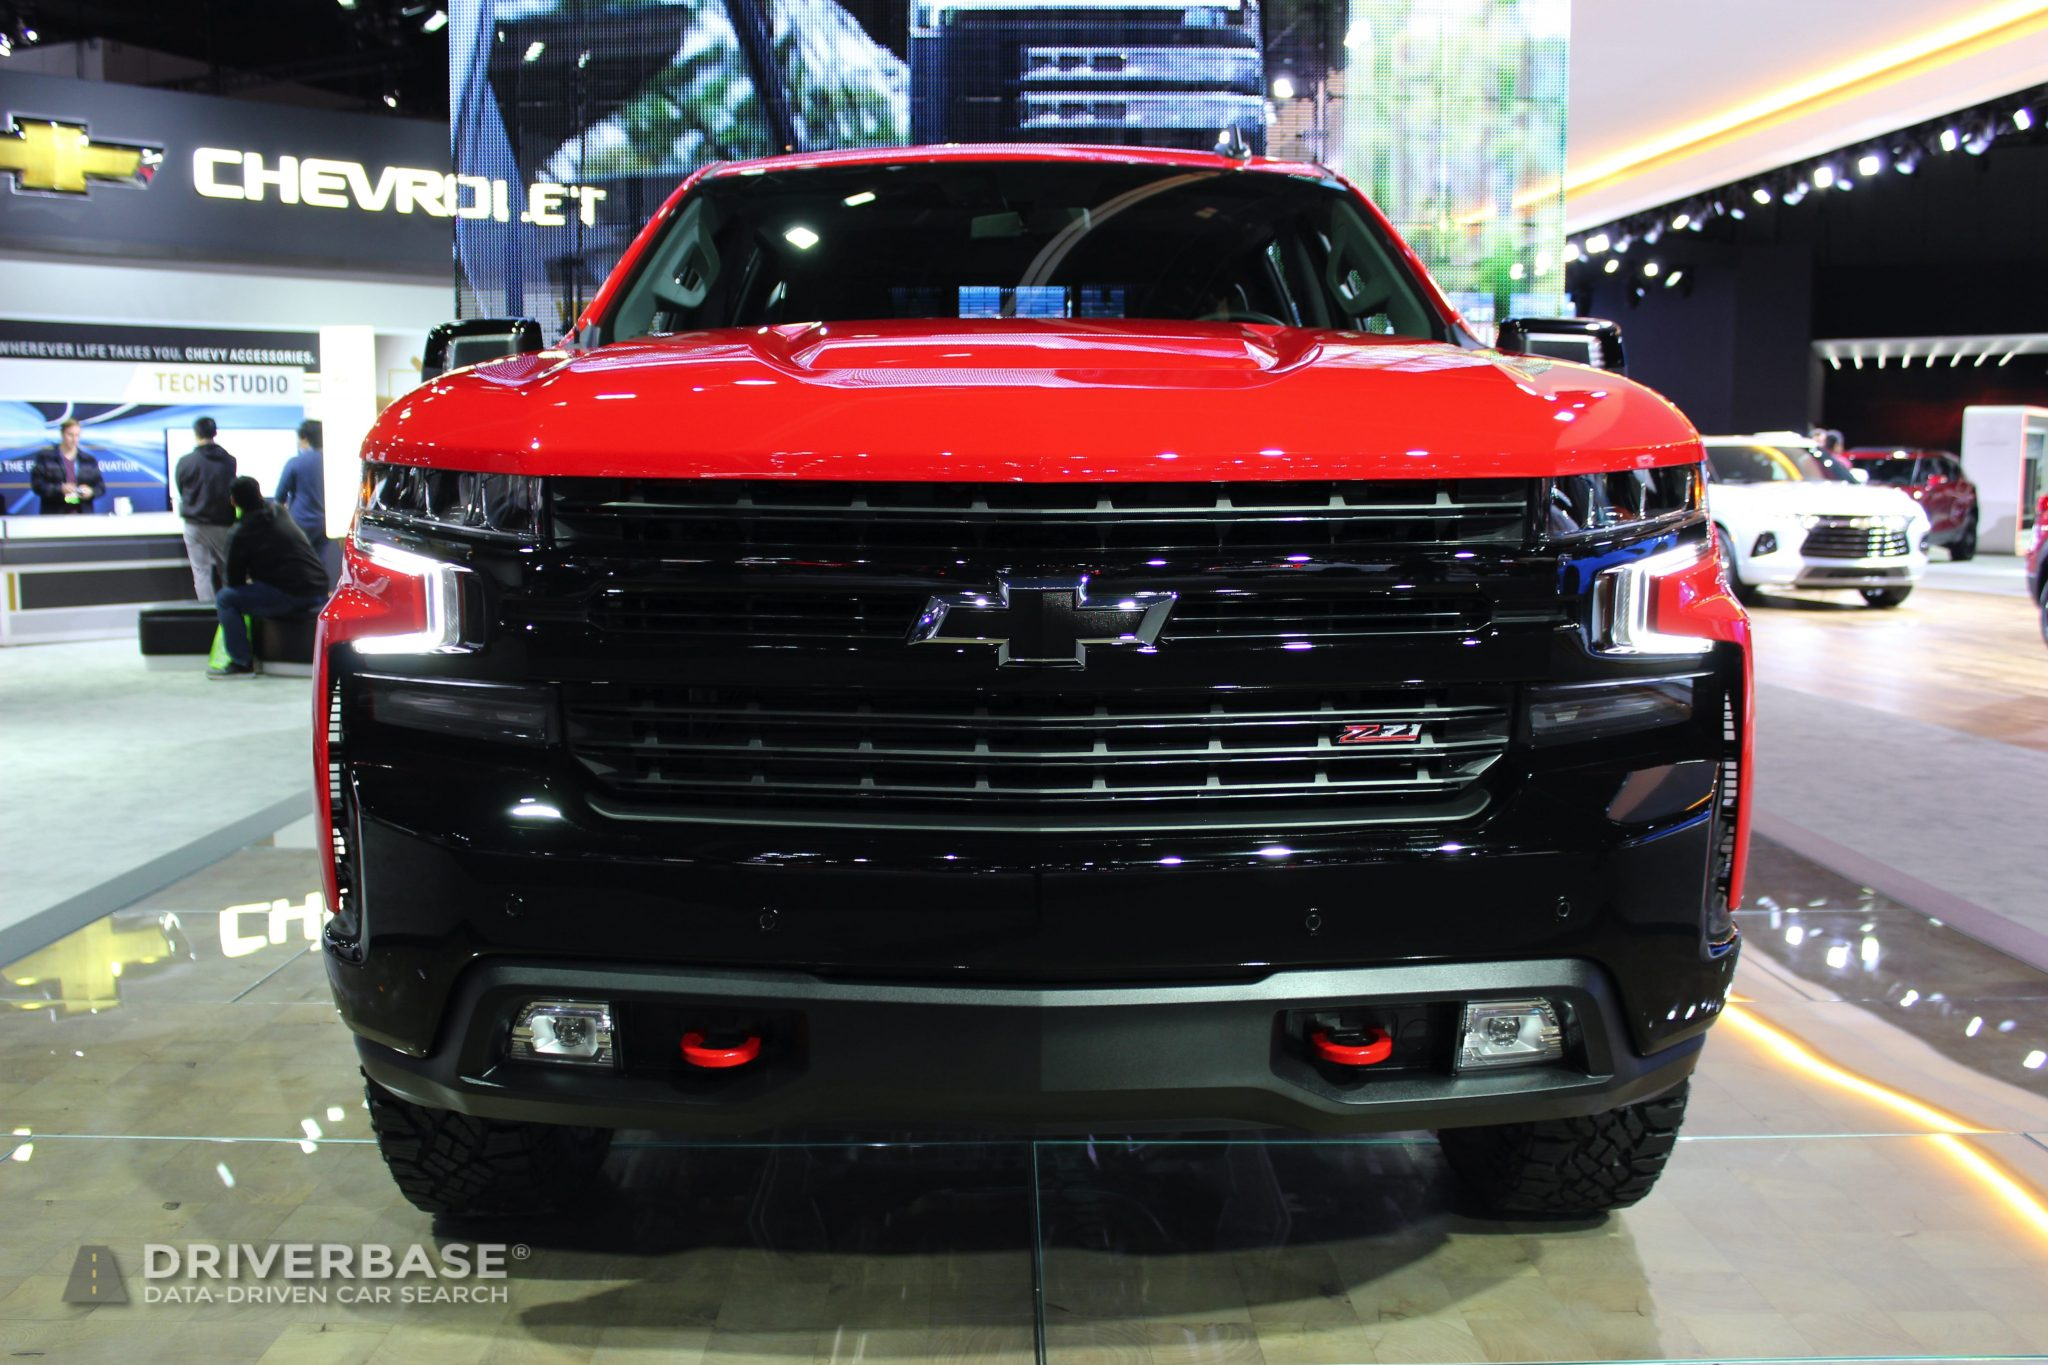 2020 Chevrolet Silverado LT Trail Boss at the 2019 Los Angeles Auto Show